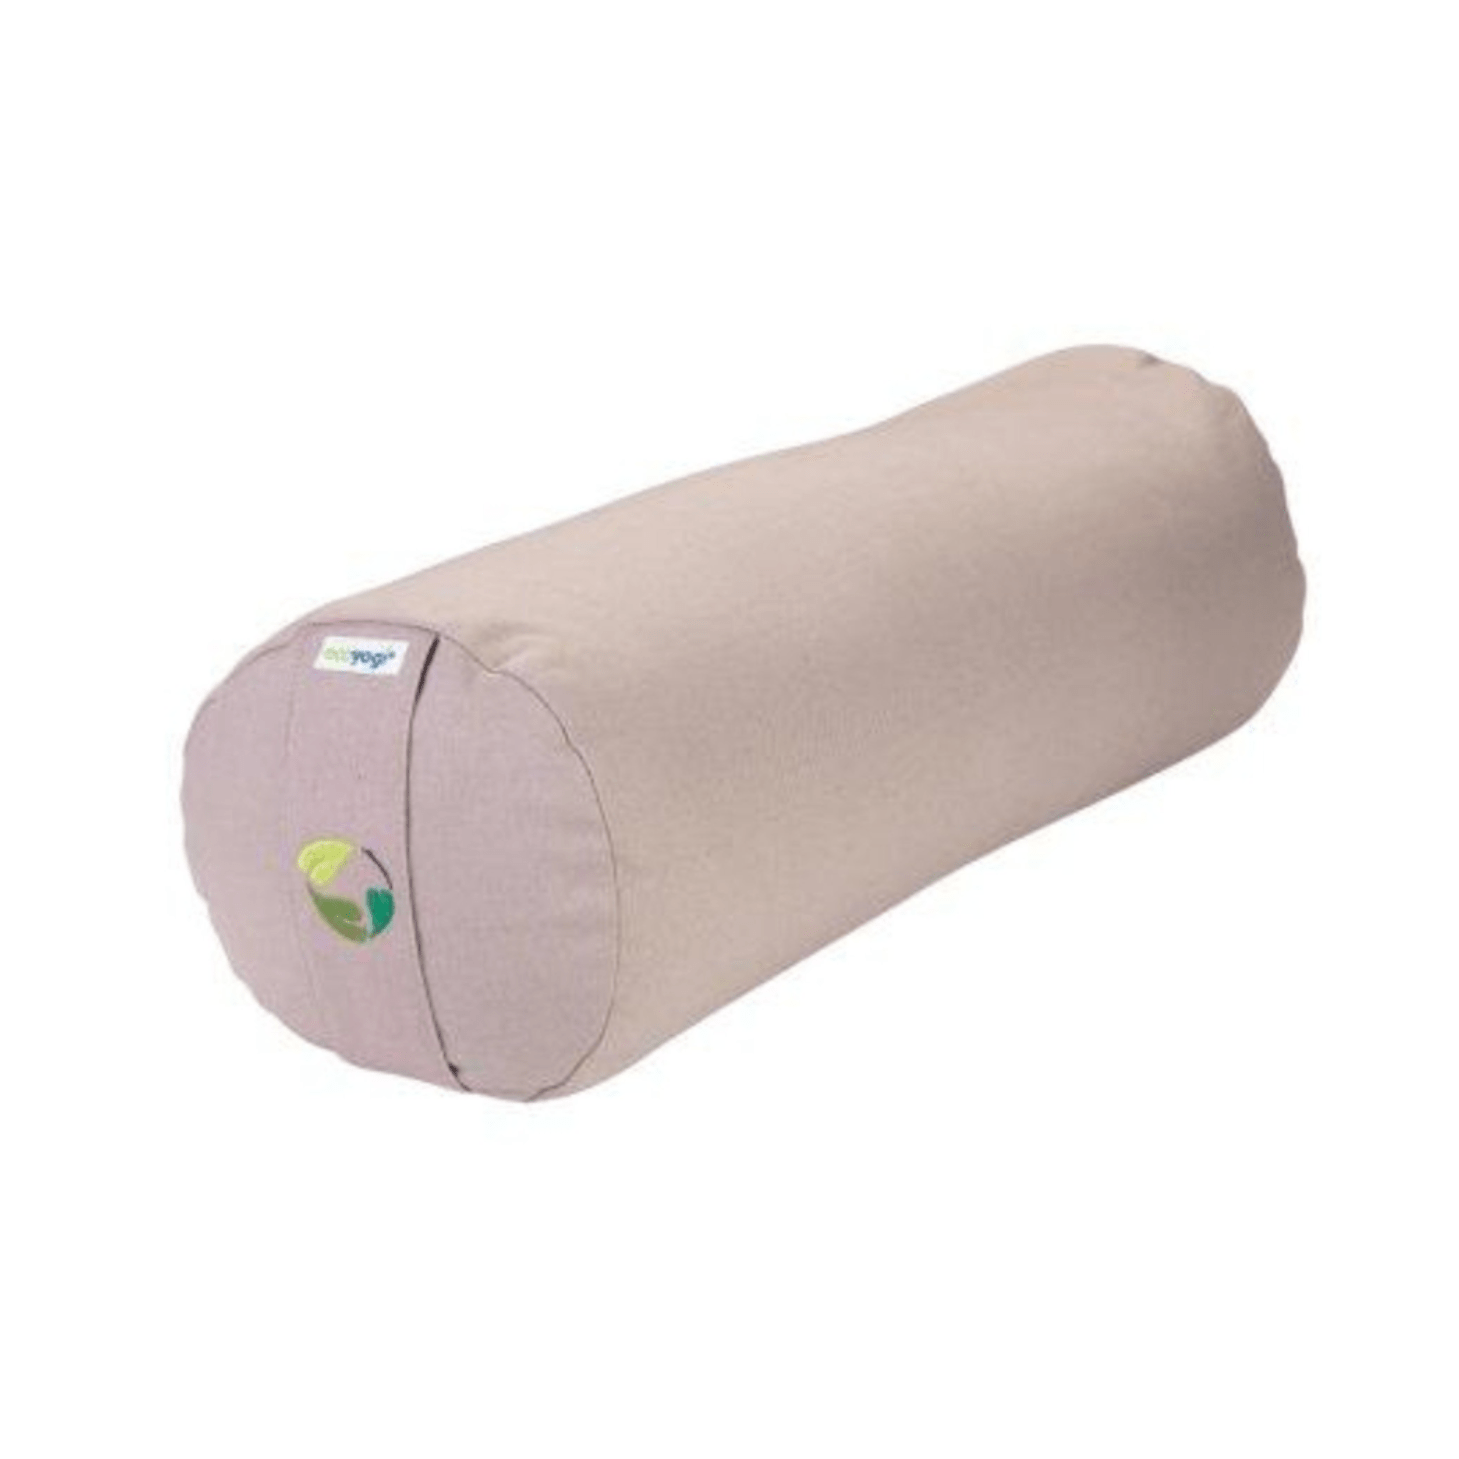 Sustainable yoga cushion in organic cotton GOTS certified with filling sand